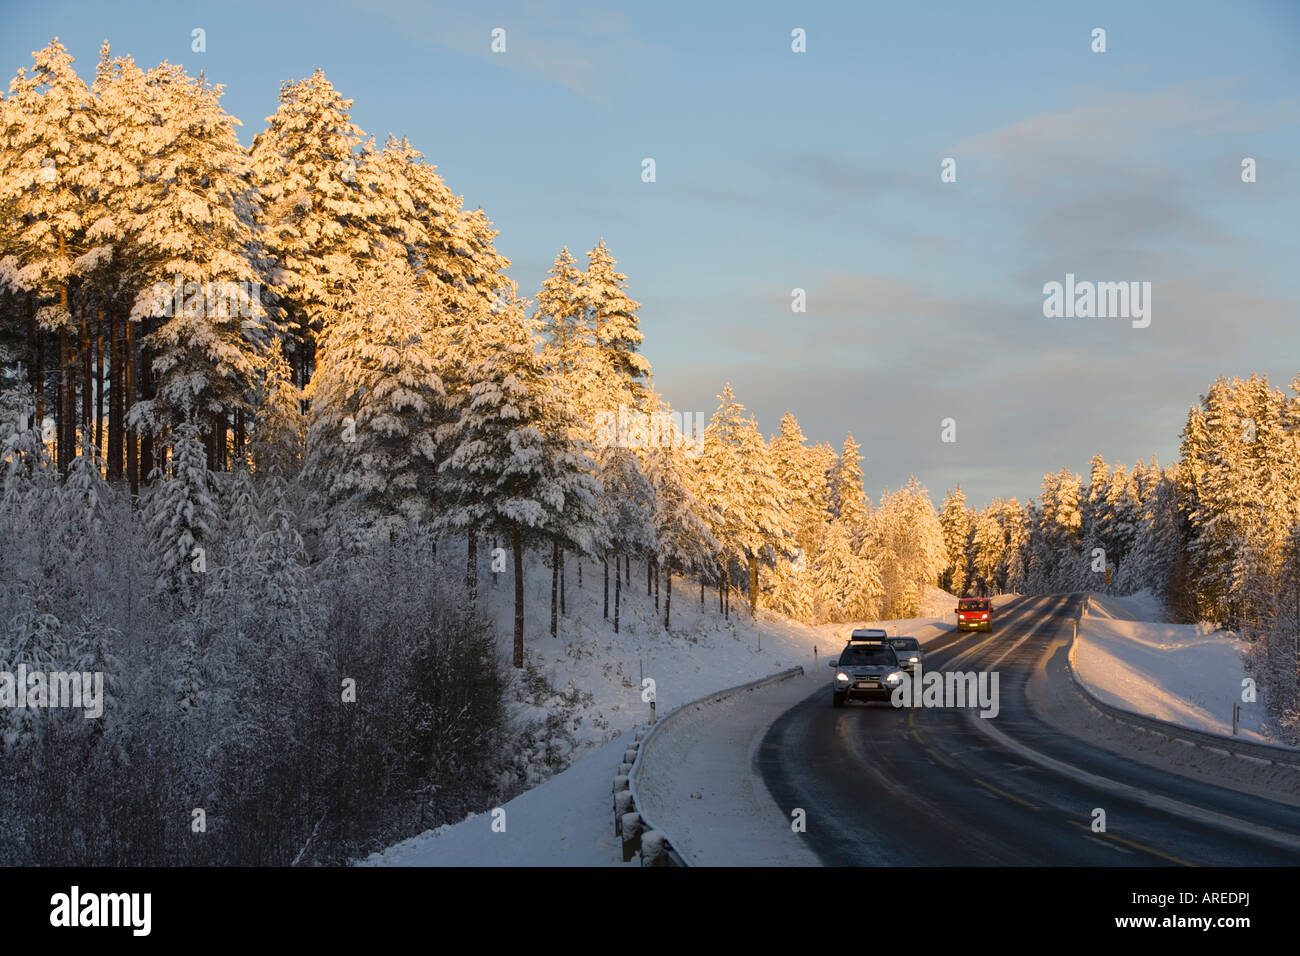 Cars driving on Finnish highway at evening light at Winter Finland - Stock Image